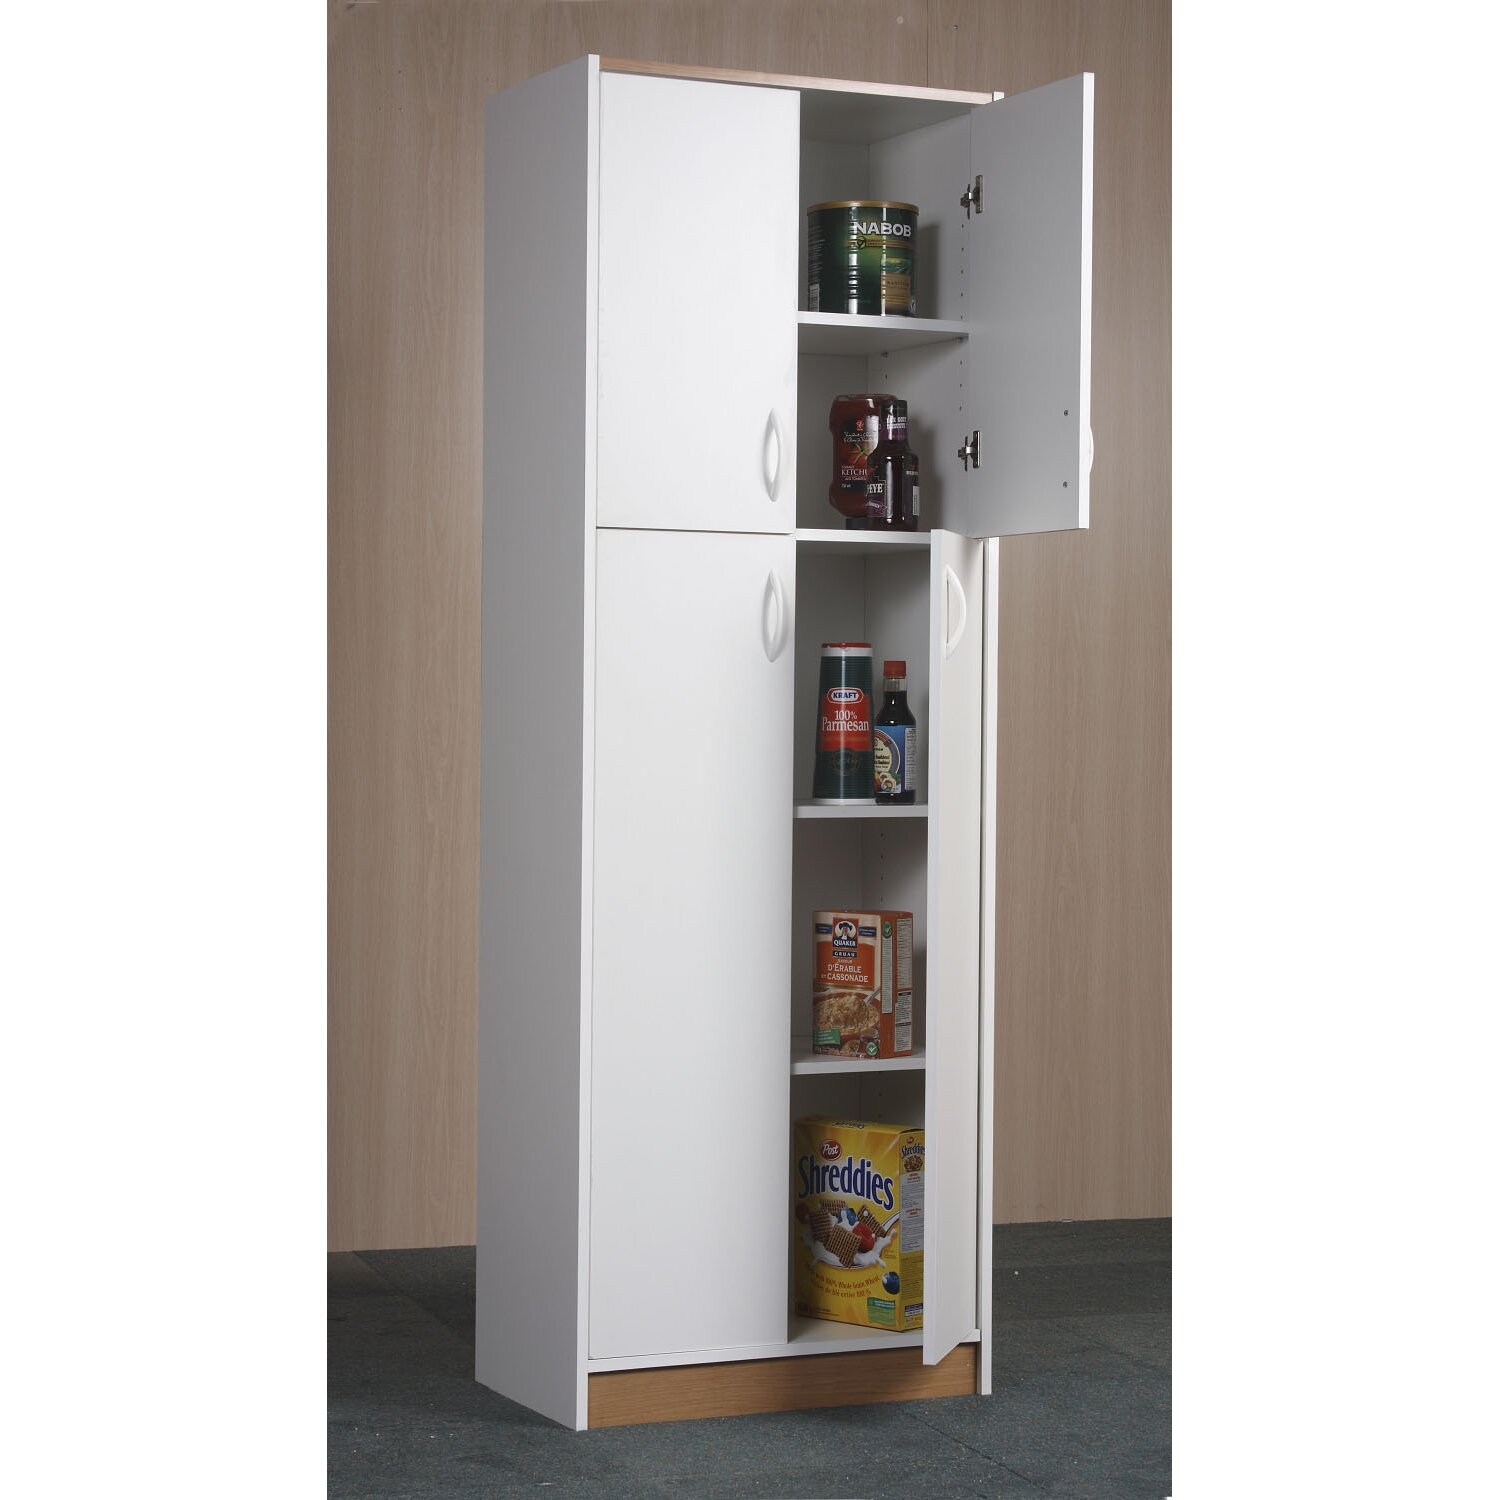 Pantry Cabinet: Tall Kitchen Cabinet Pantry with Tall Corner ...